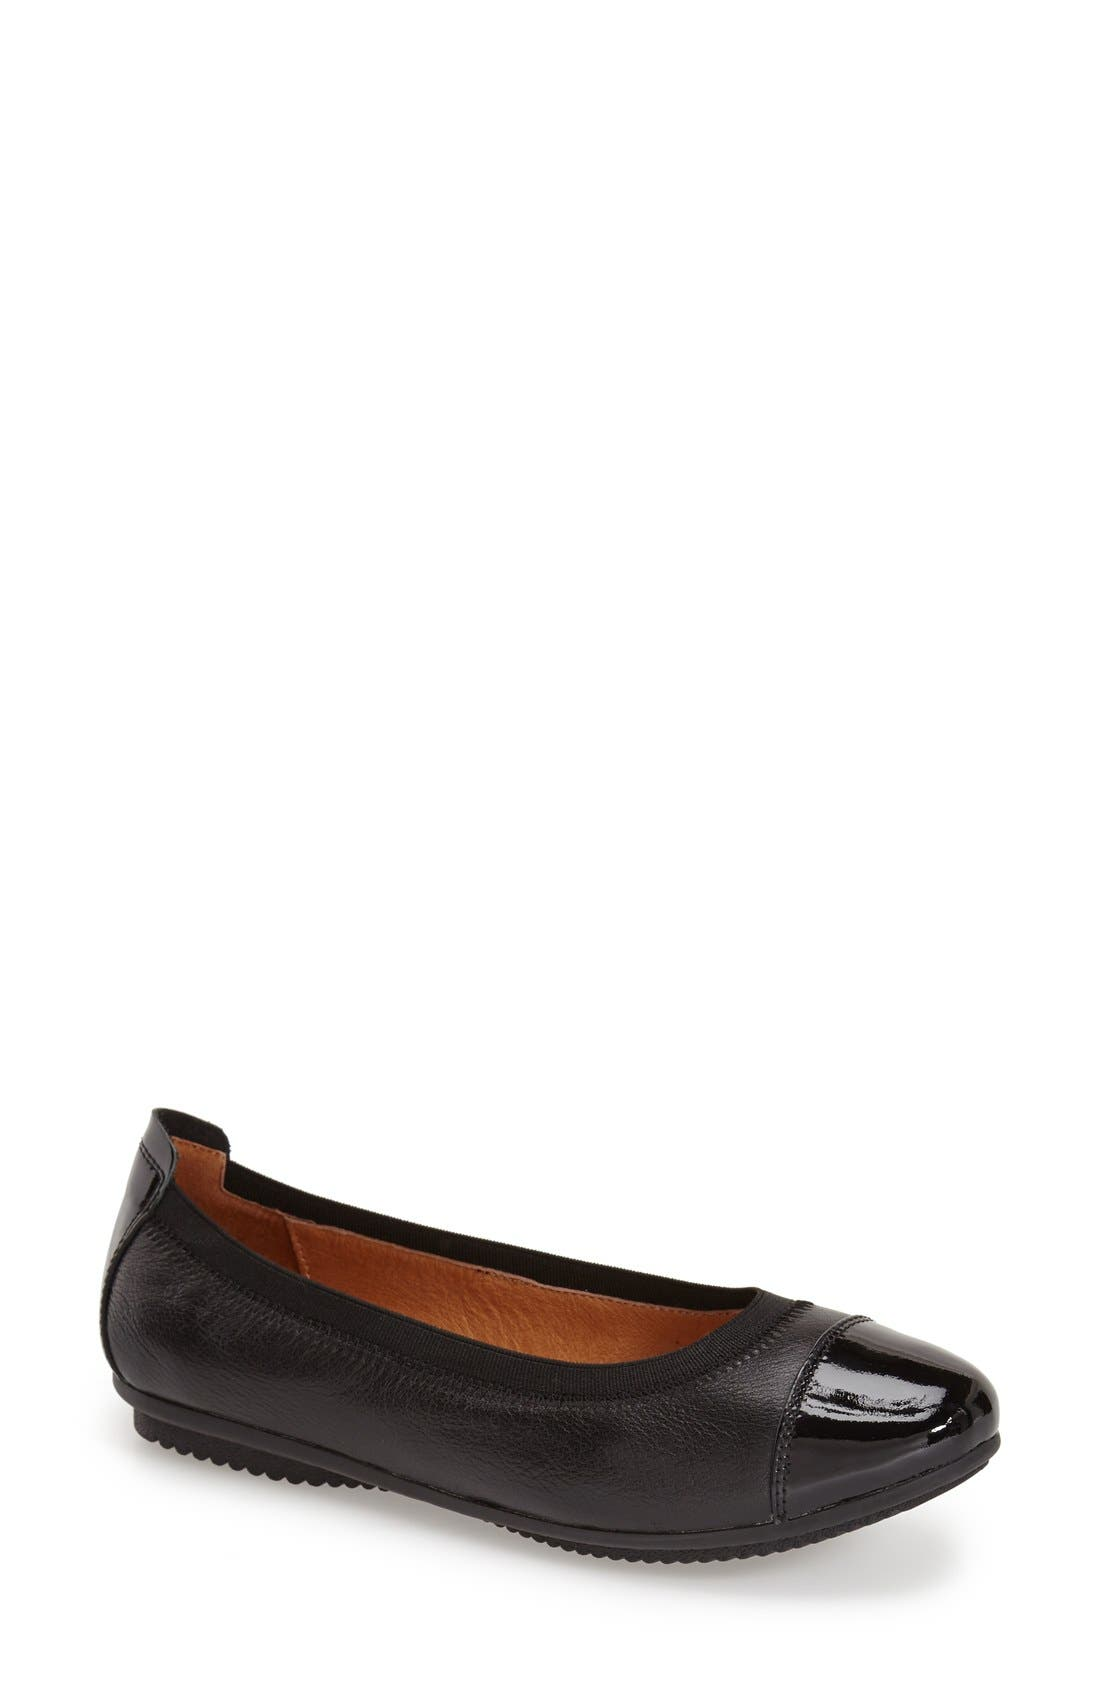 Pippa 07 Flat,                         Main,                         color, BLACK PATENT